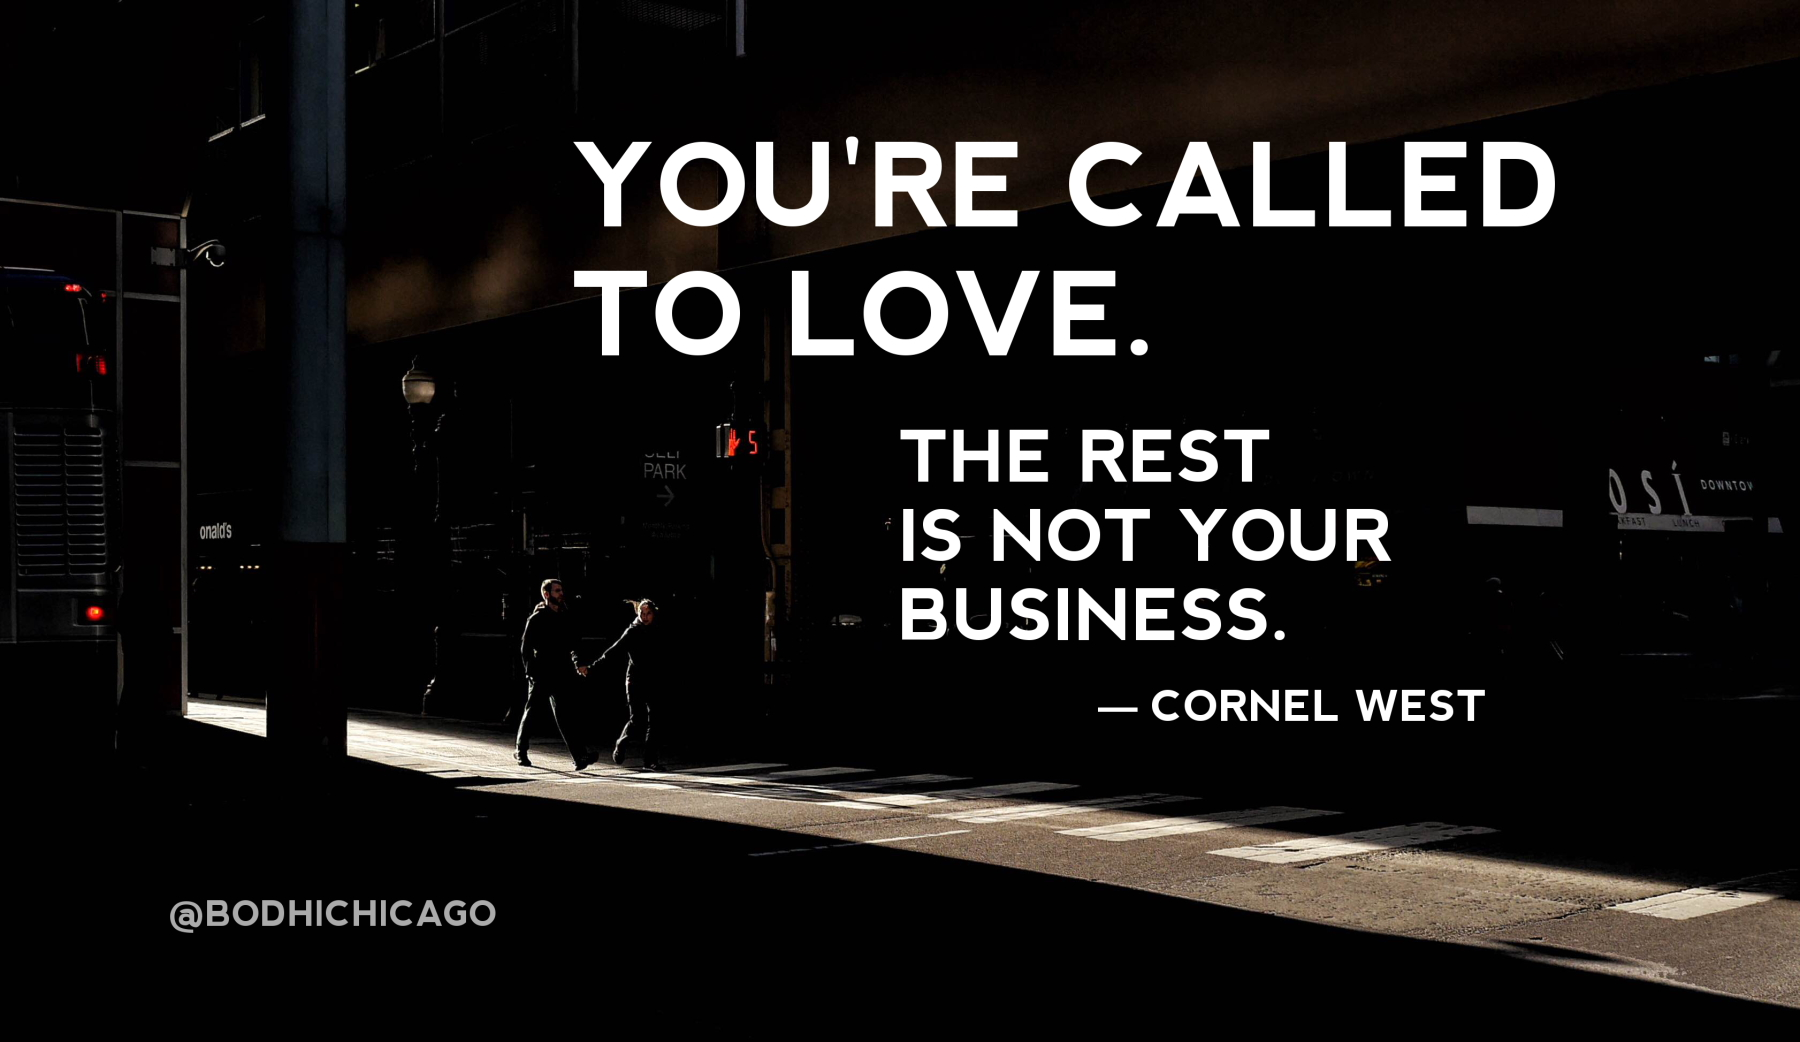 Spiritual Quotes About Love Wednesday Wisdom Cornel West On Our Calling To Love Not Judge